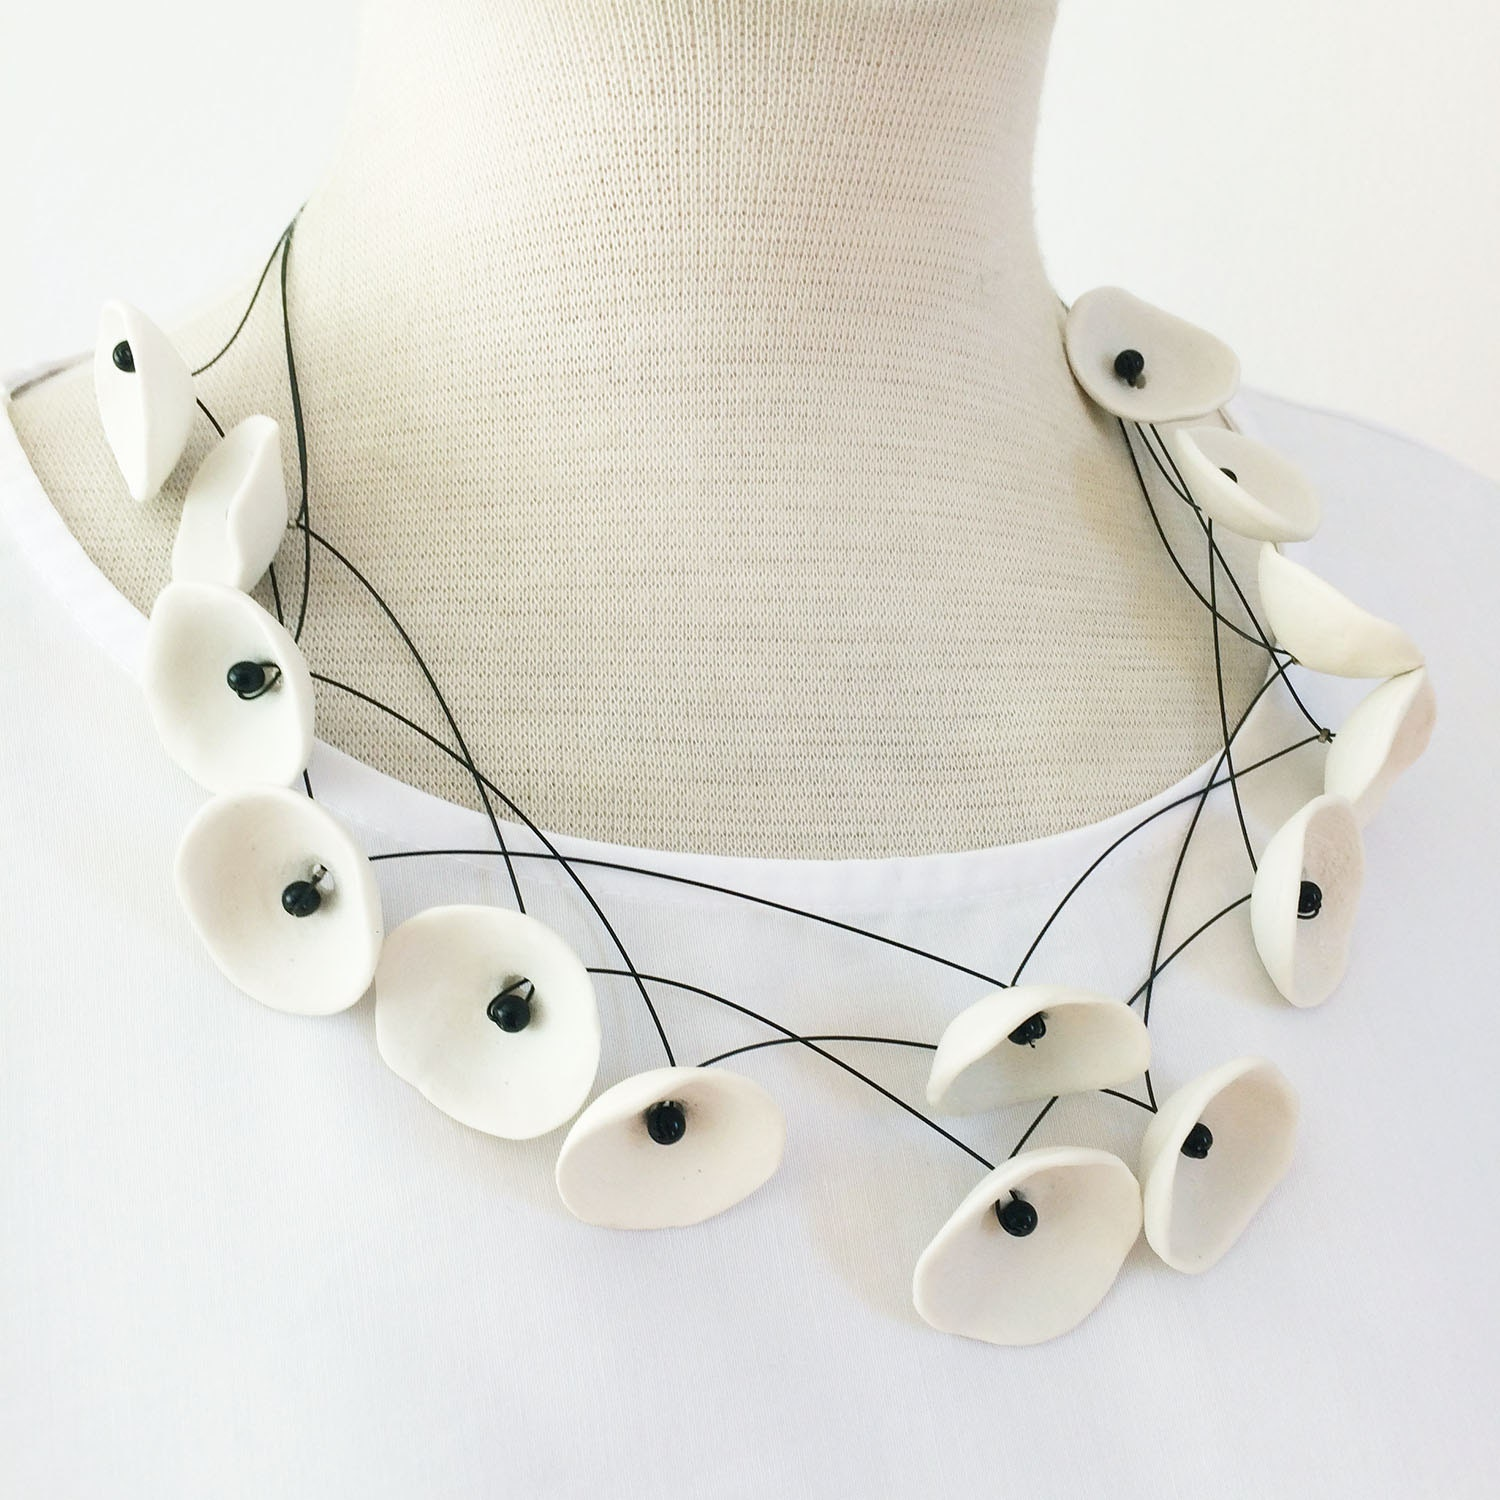 Porcelain nests necklace.